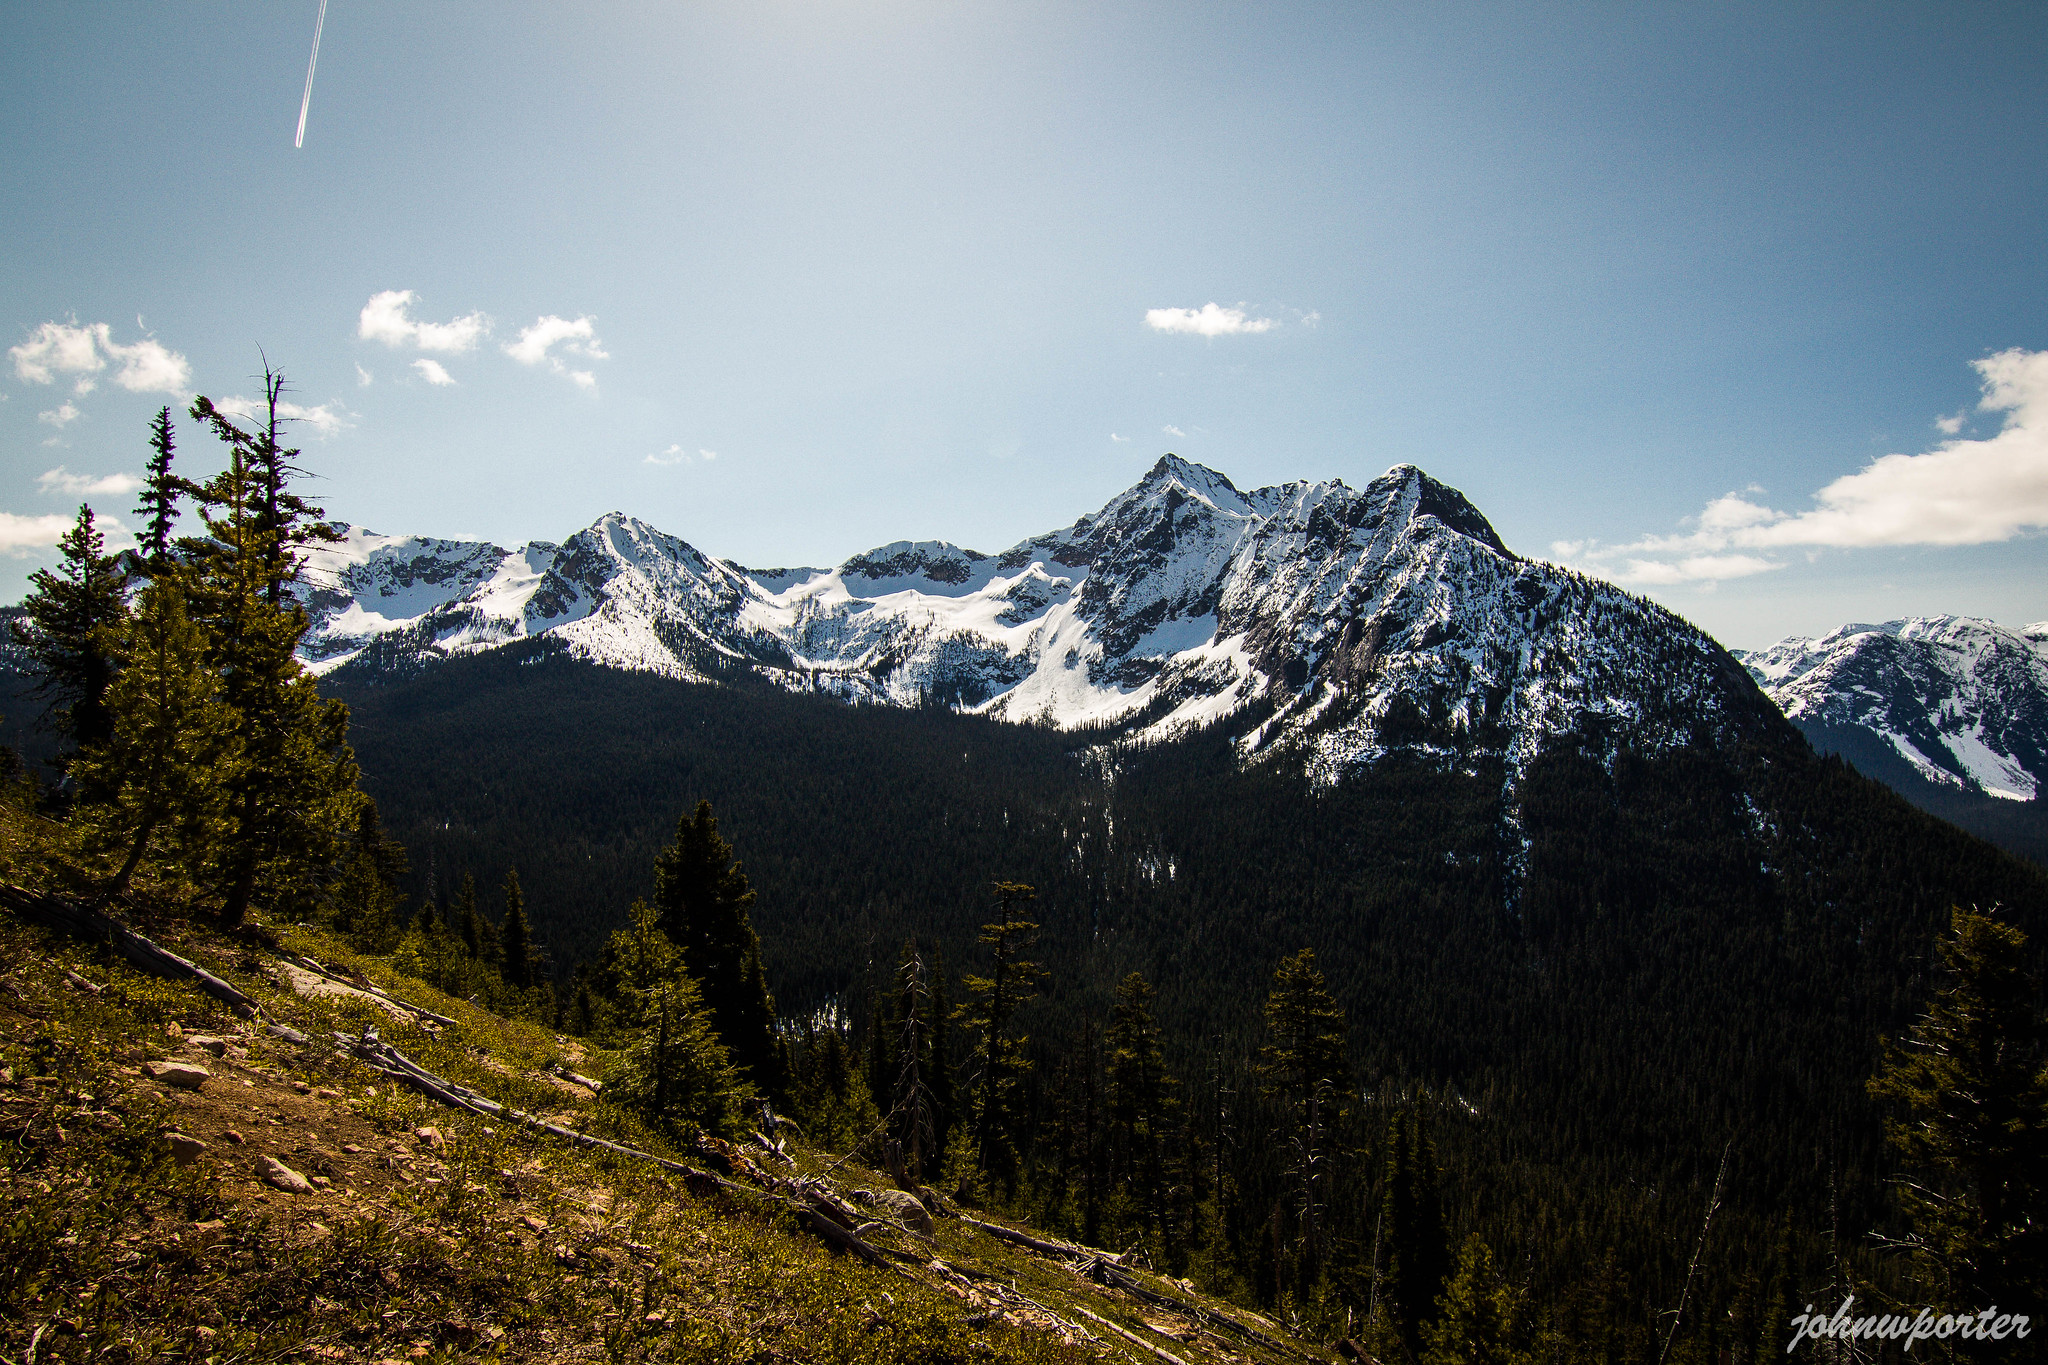 Porcupine Peak from the south slopes